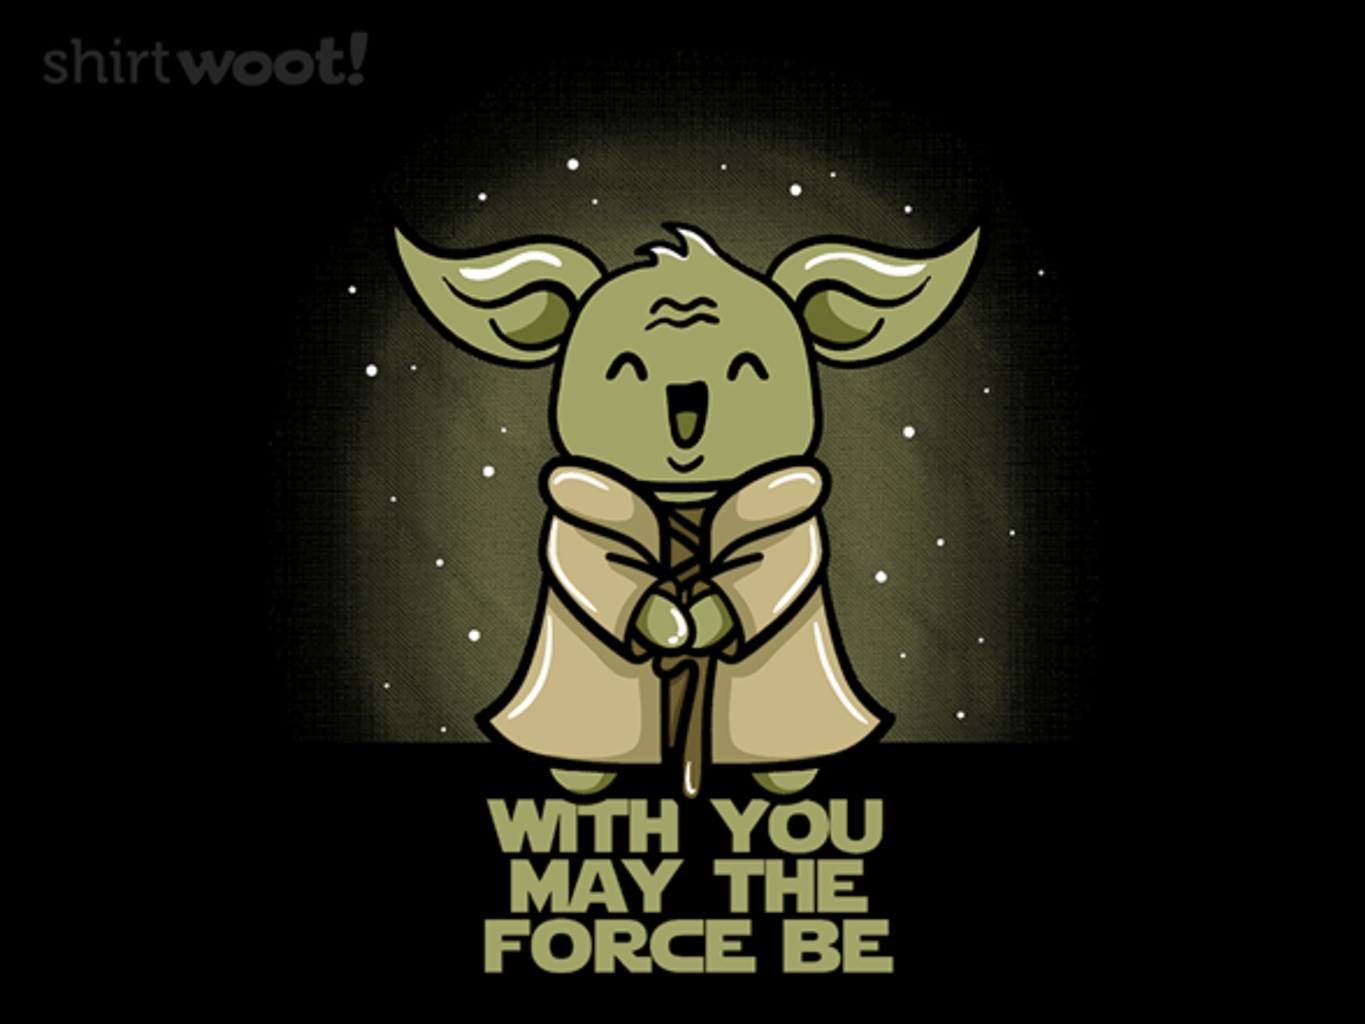 Woot!: With You May the Force Be - $15.00 + Free shipping